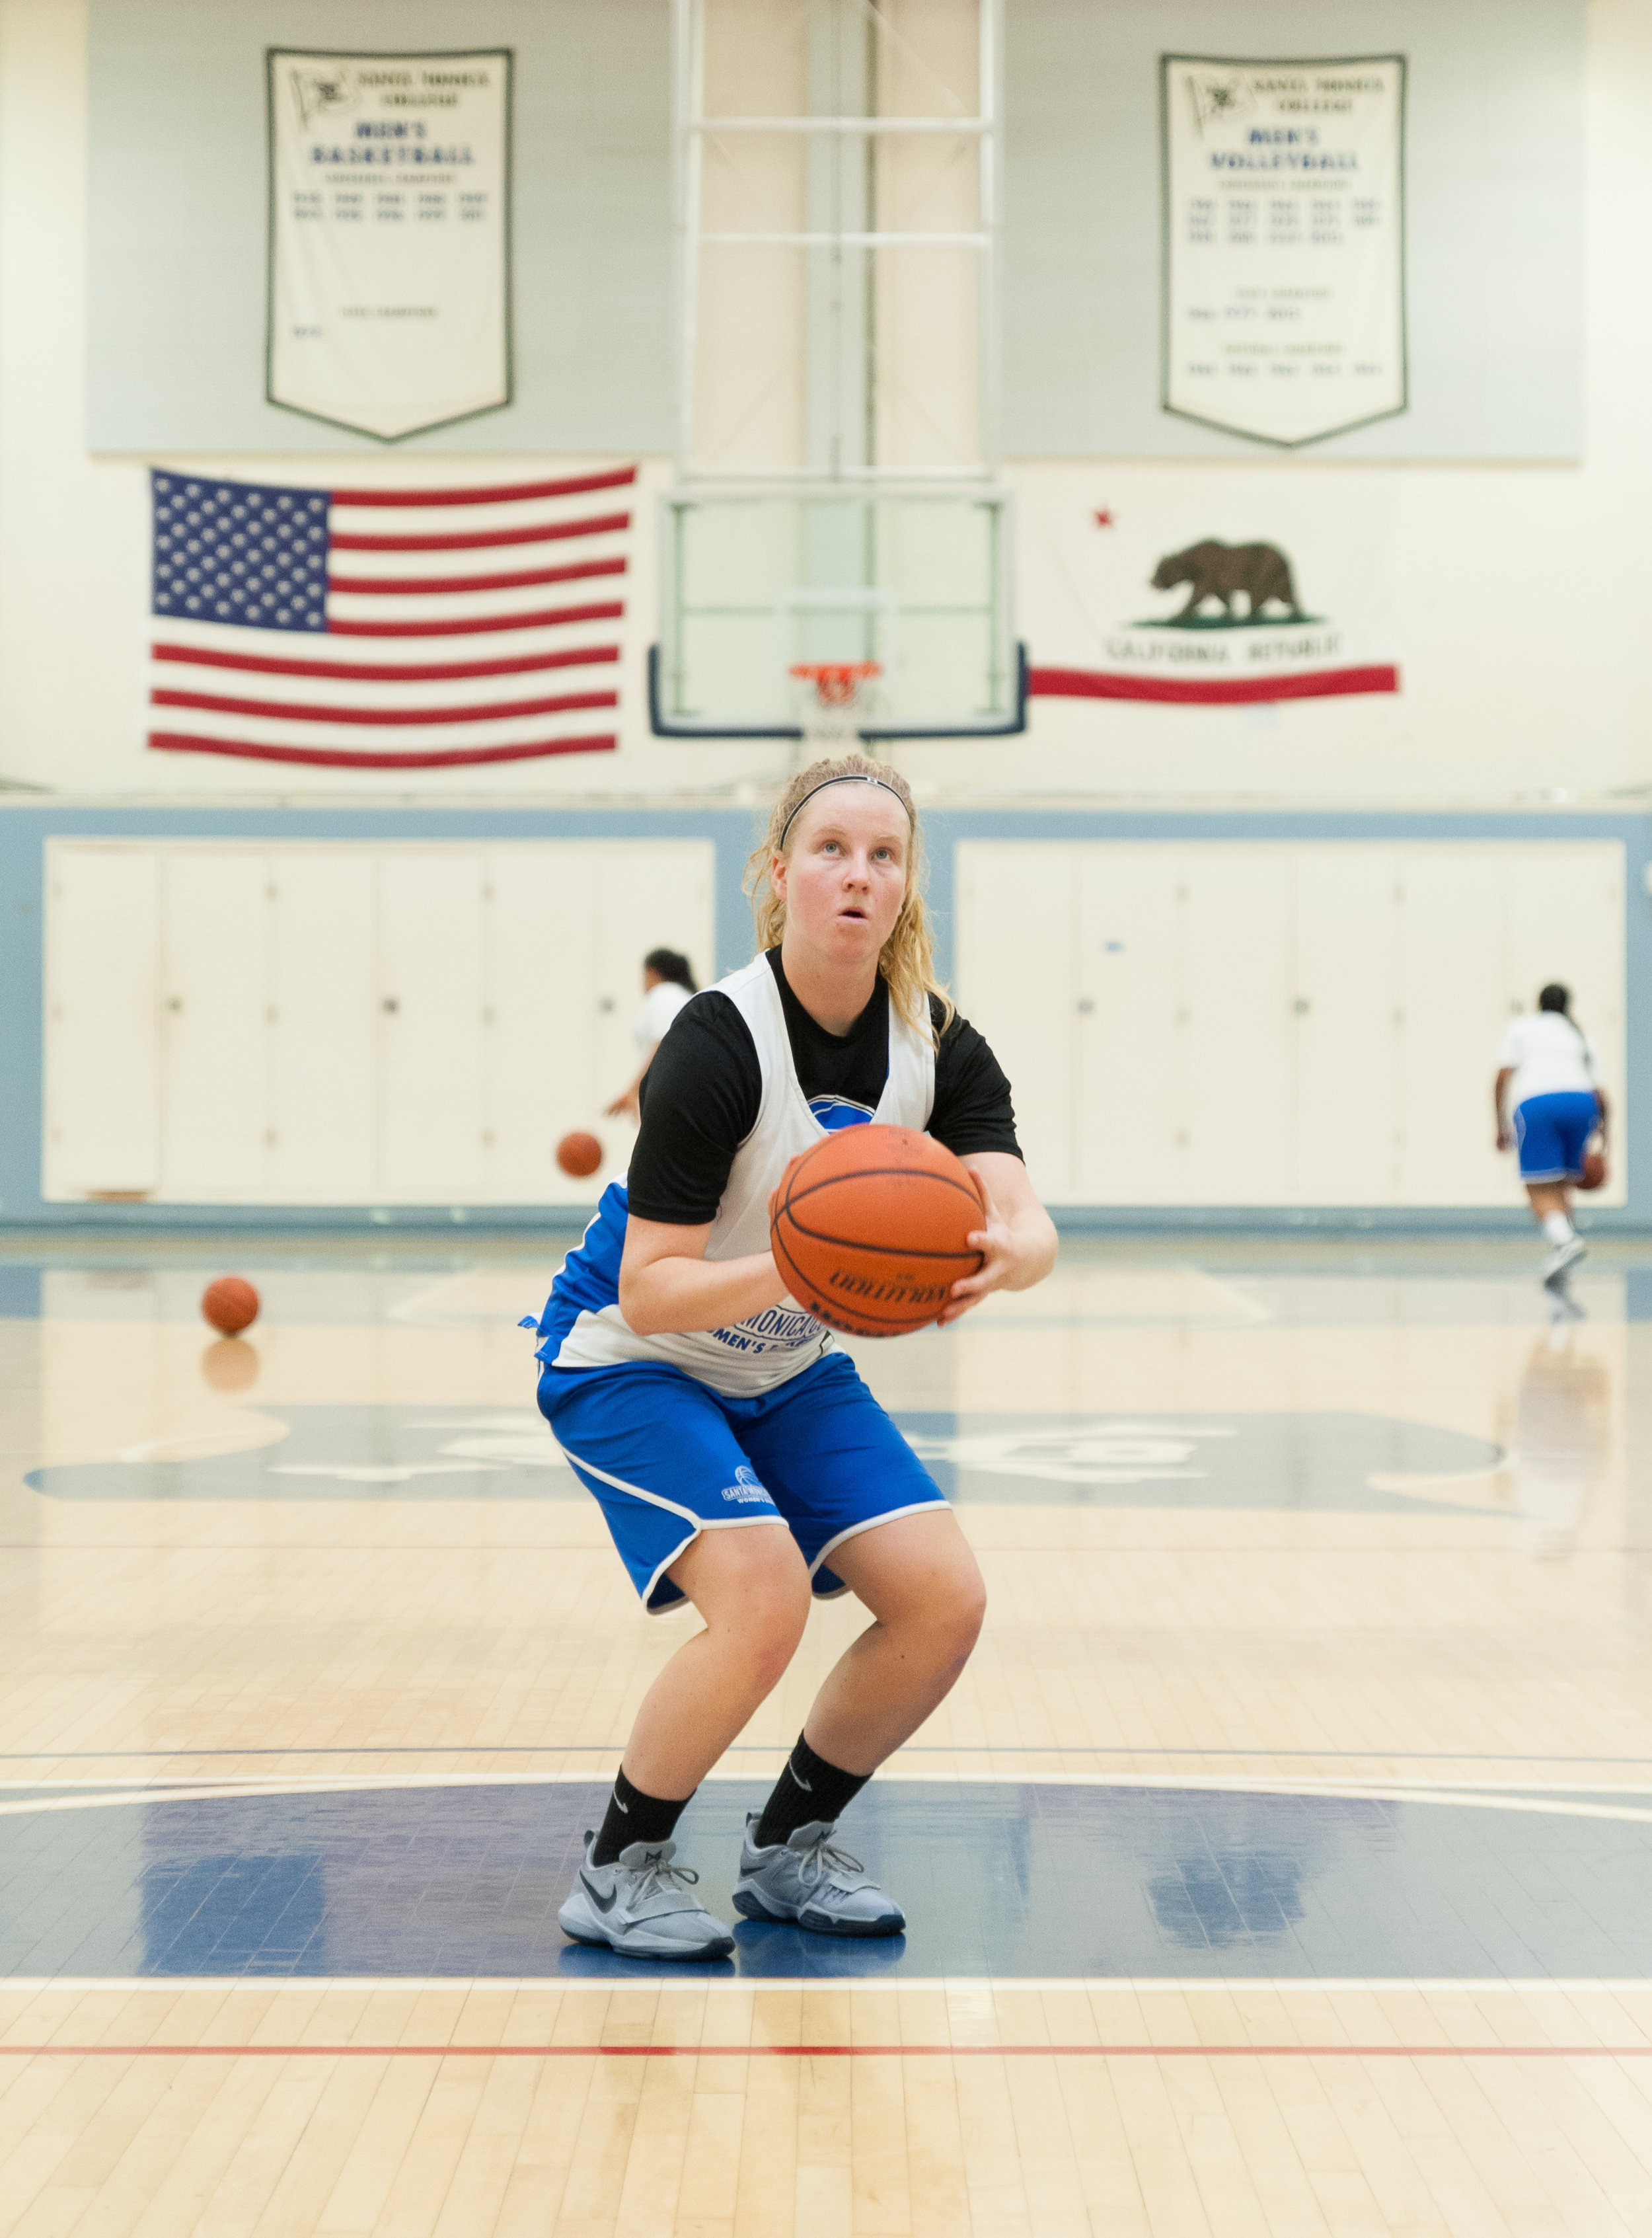 Freshman guard Pleun Geurts (24) of the Santa Monica College Women's Basketball Team shoots free throws during Monday's afternoon practice. SMC Pavilion, Santa Monica College Main Campus, Santa Monica, Calif.. November 13, 2017.(Photo by: Justin Han/Corsair Staff)